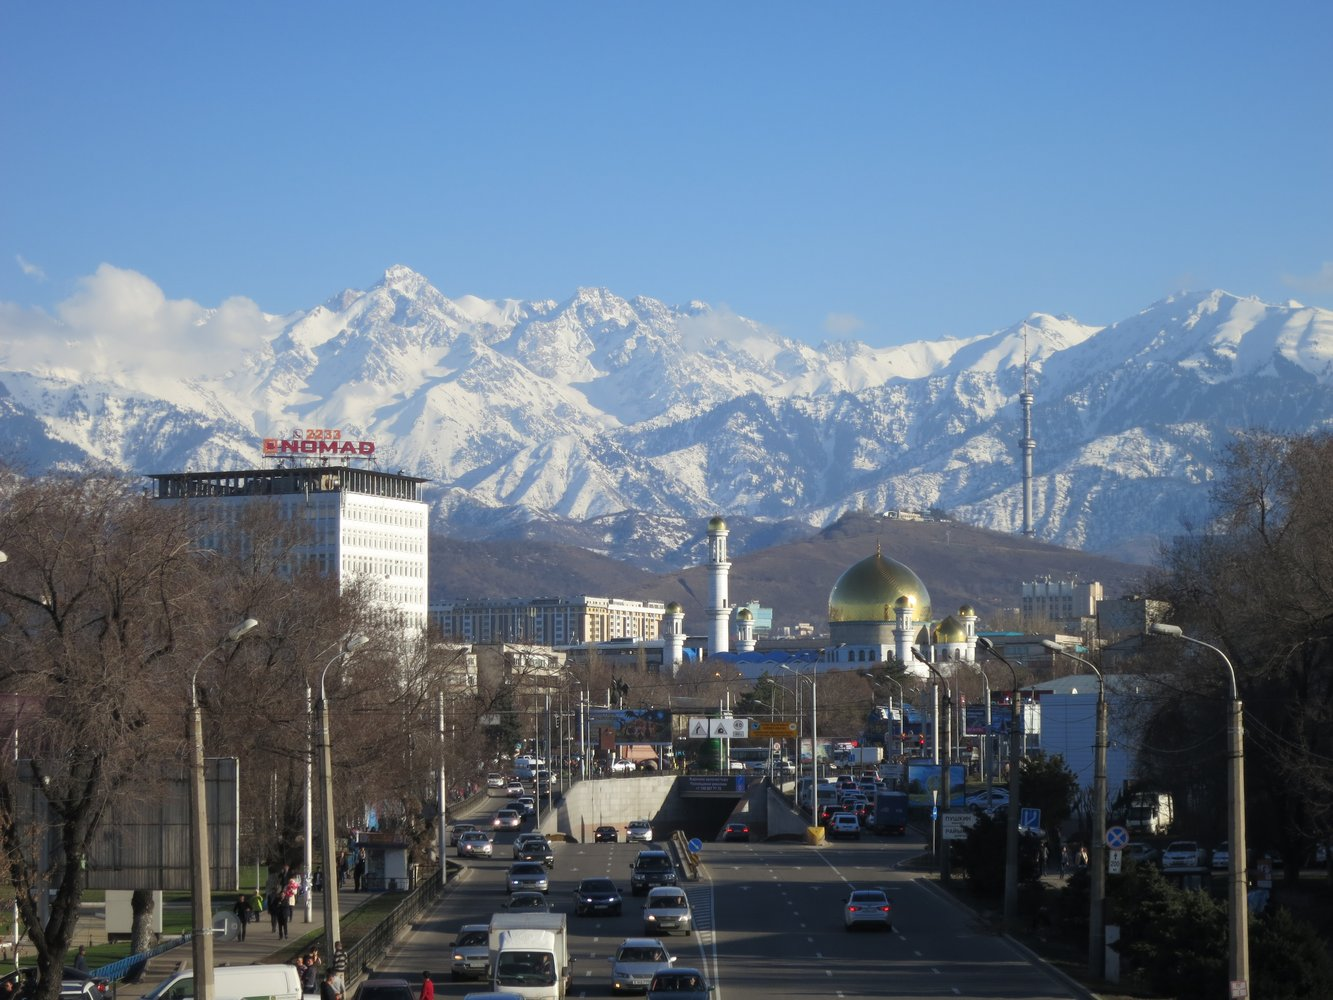 A clear day in Almaty, Kazakhstan